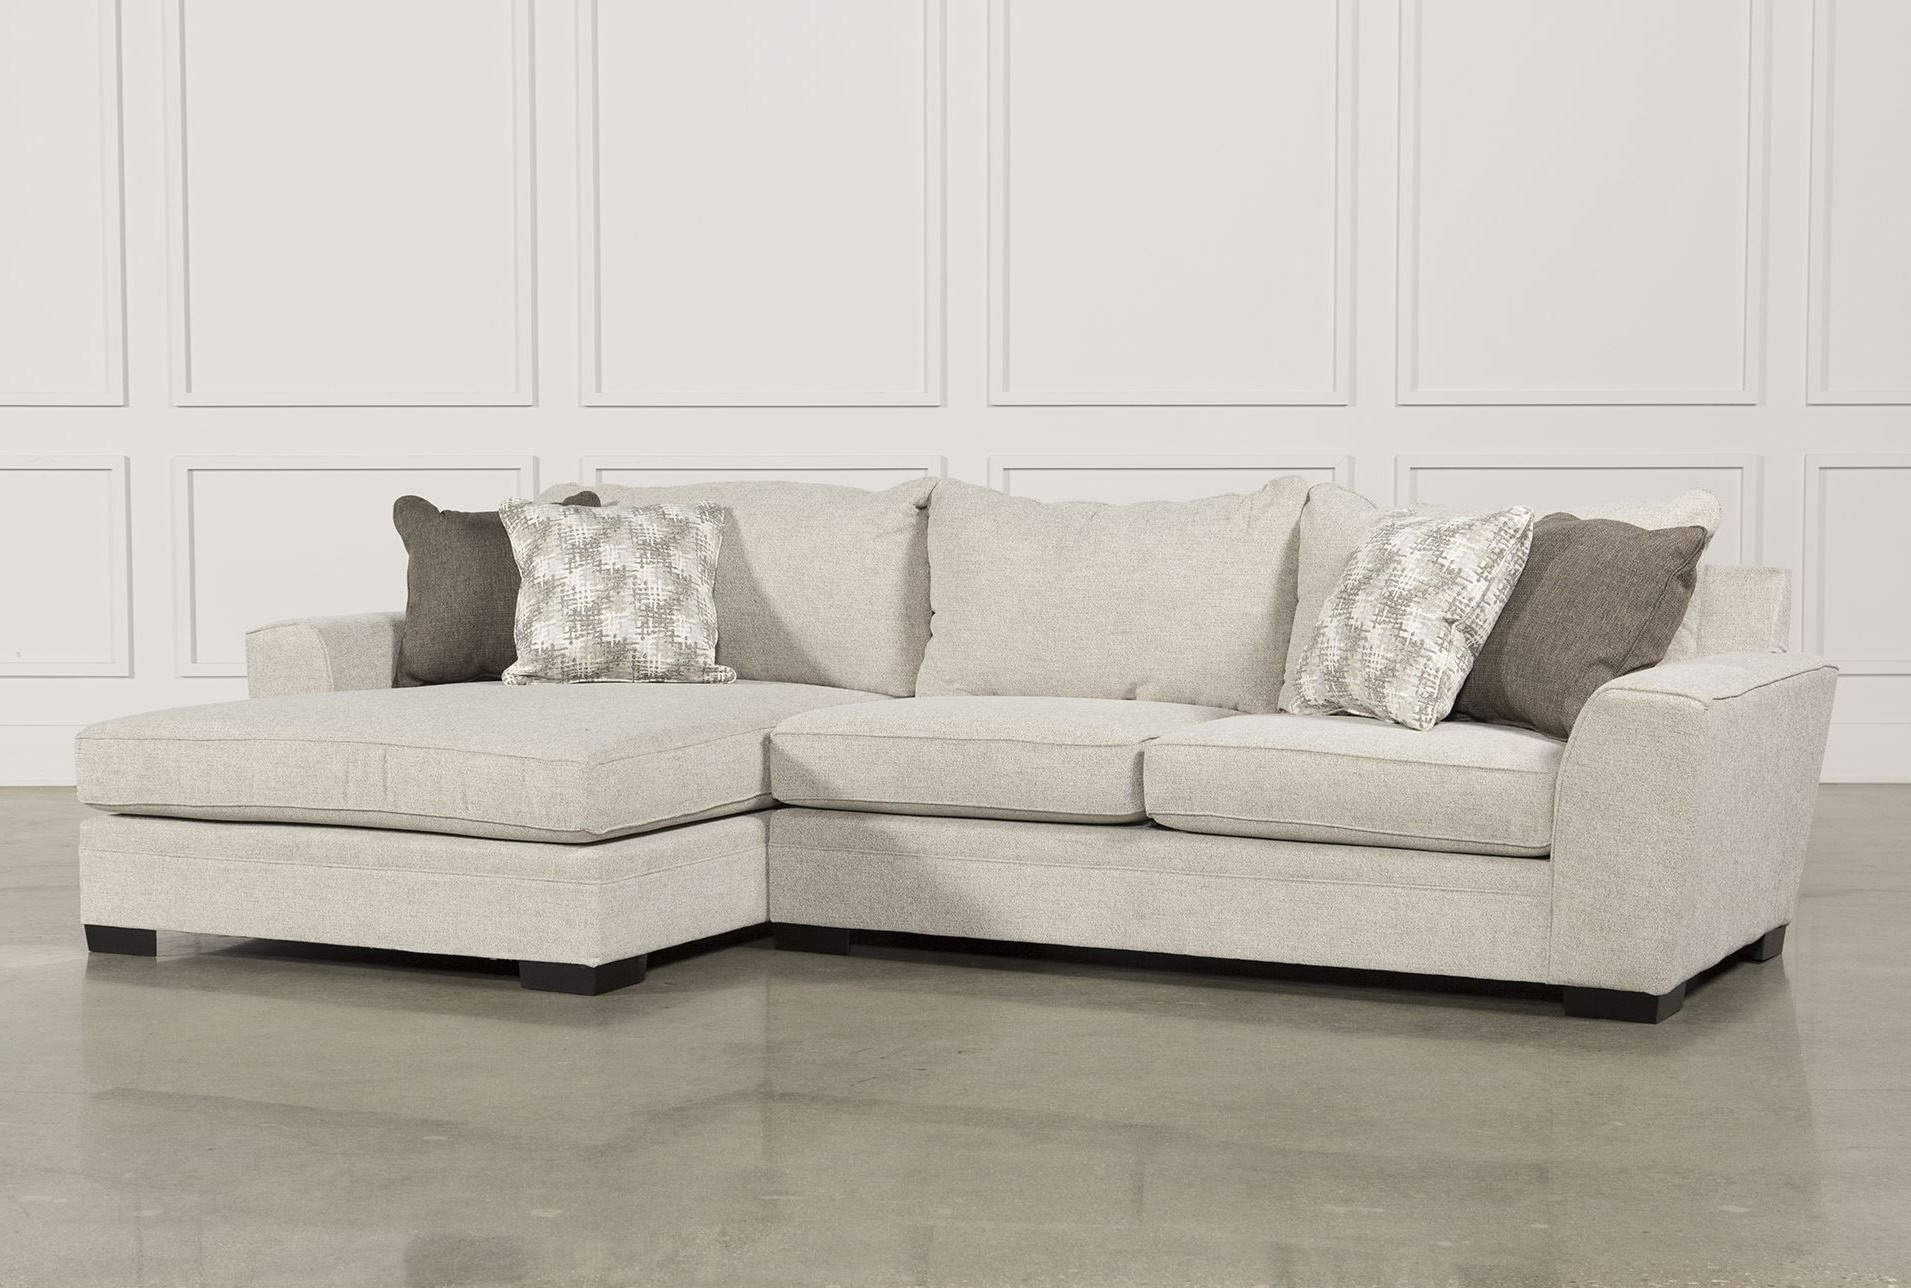 New Home Intended For Famous Delano 2 Piece Sectionals With Laf Oversized Chaise (View 3 of 20)